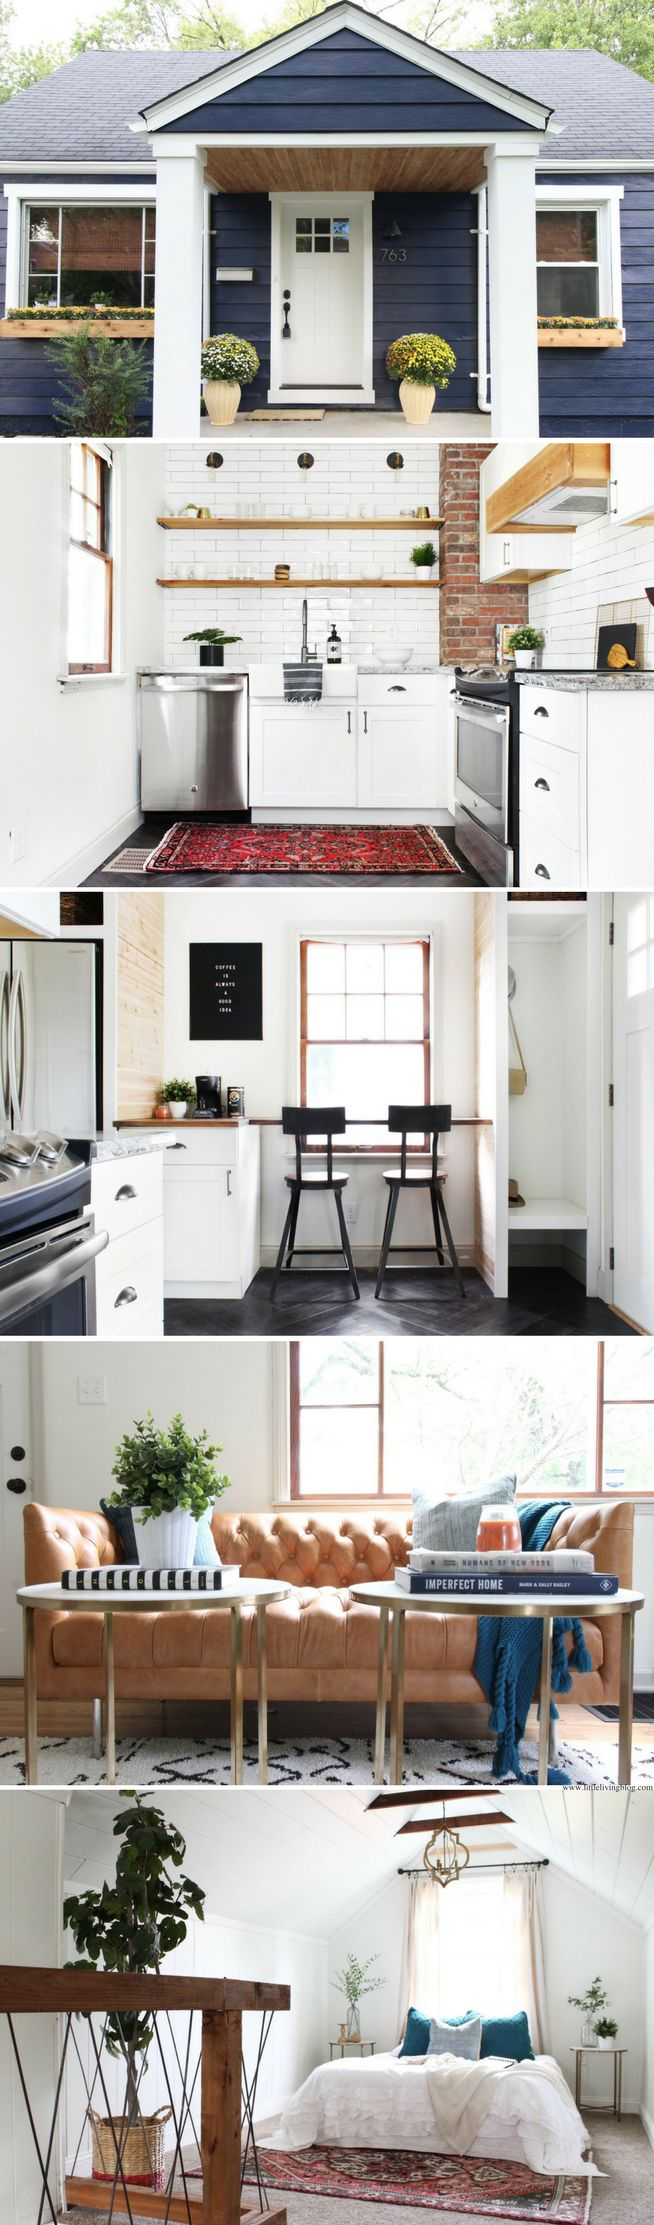 Best Small Homes Ideas On Pinterest Small Home Plans Tiny